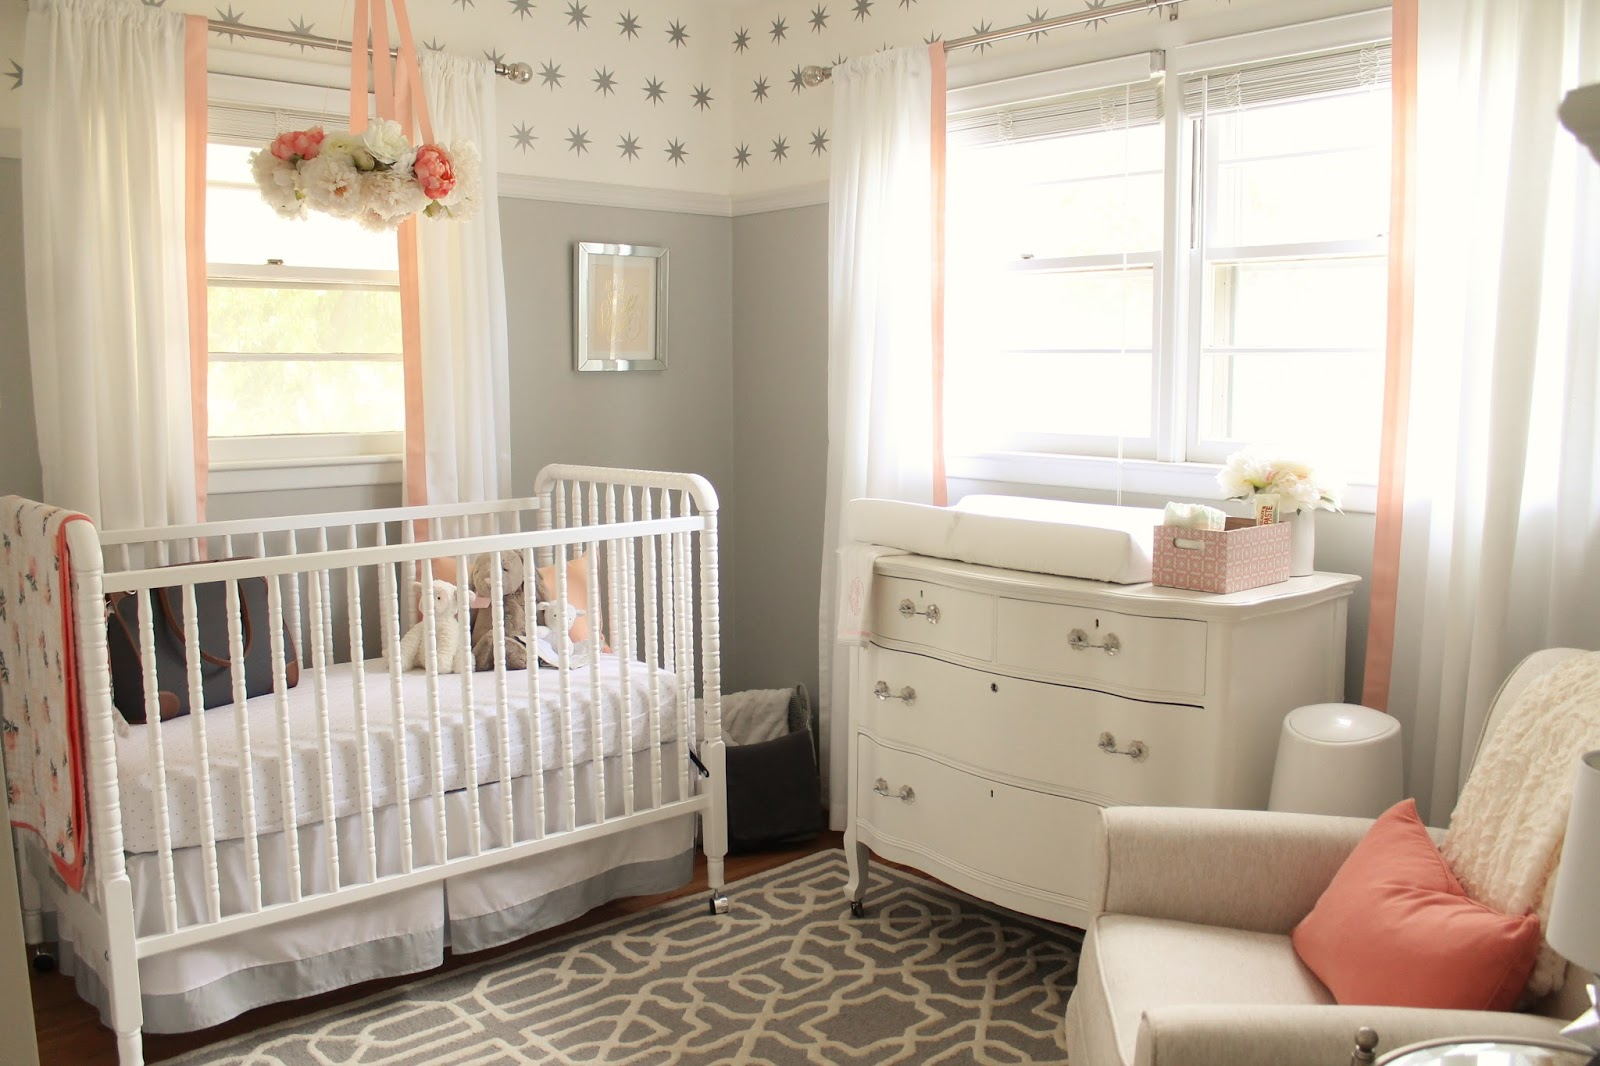 peach paint colors12th and White Peach and Gray Nursery Reveal